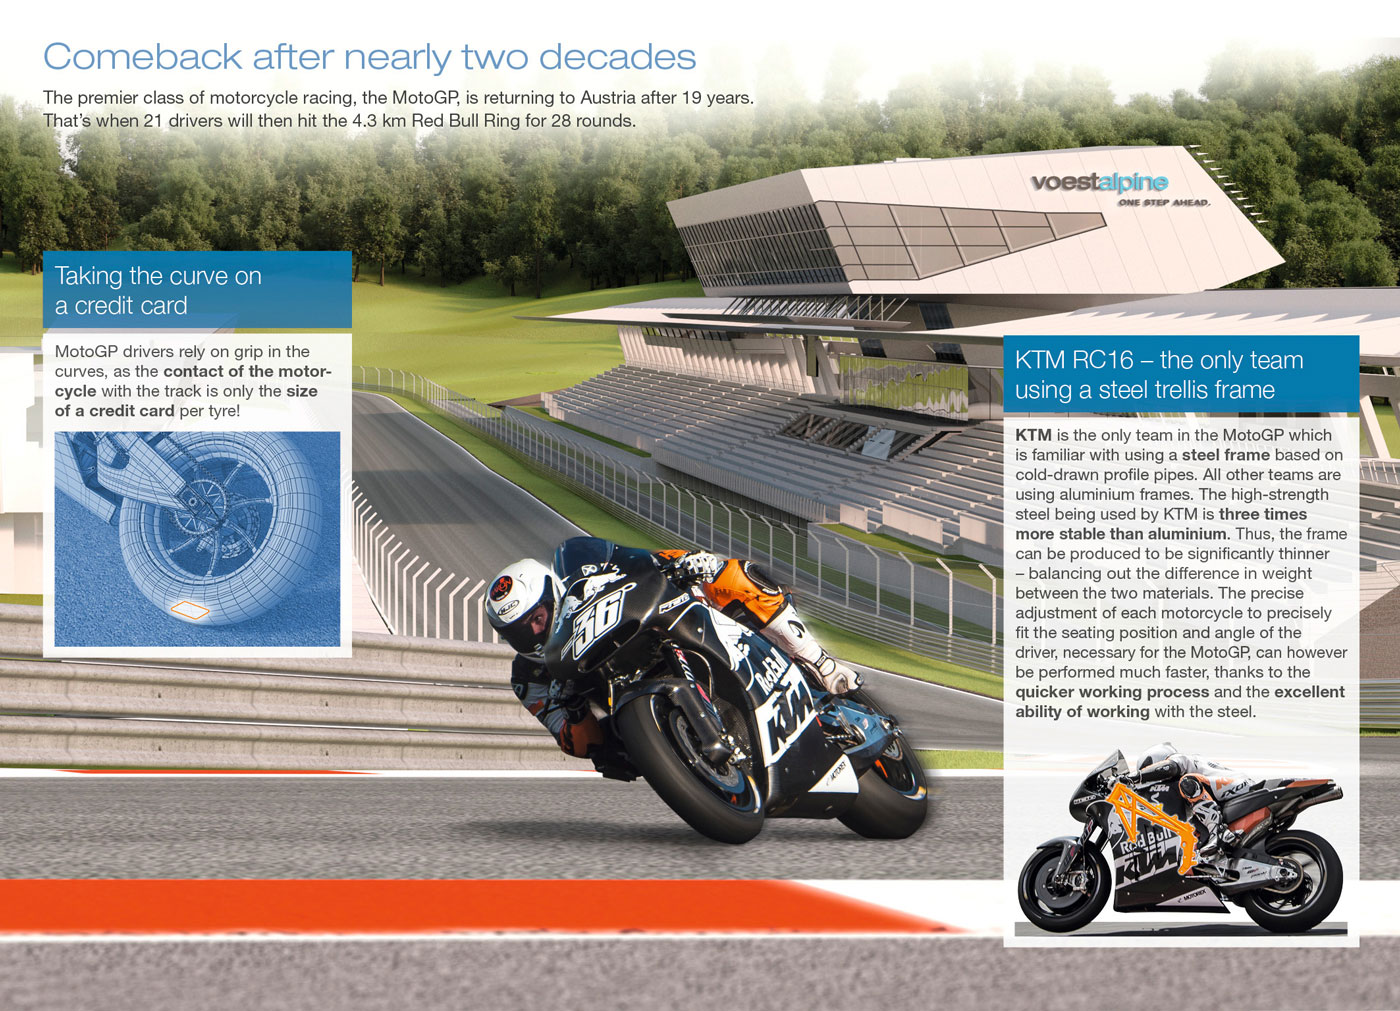 KTM steel-tube chassis infographic